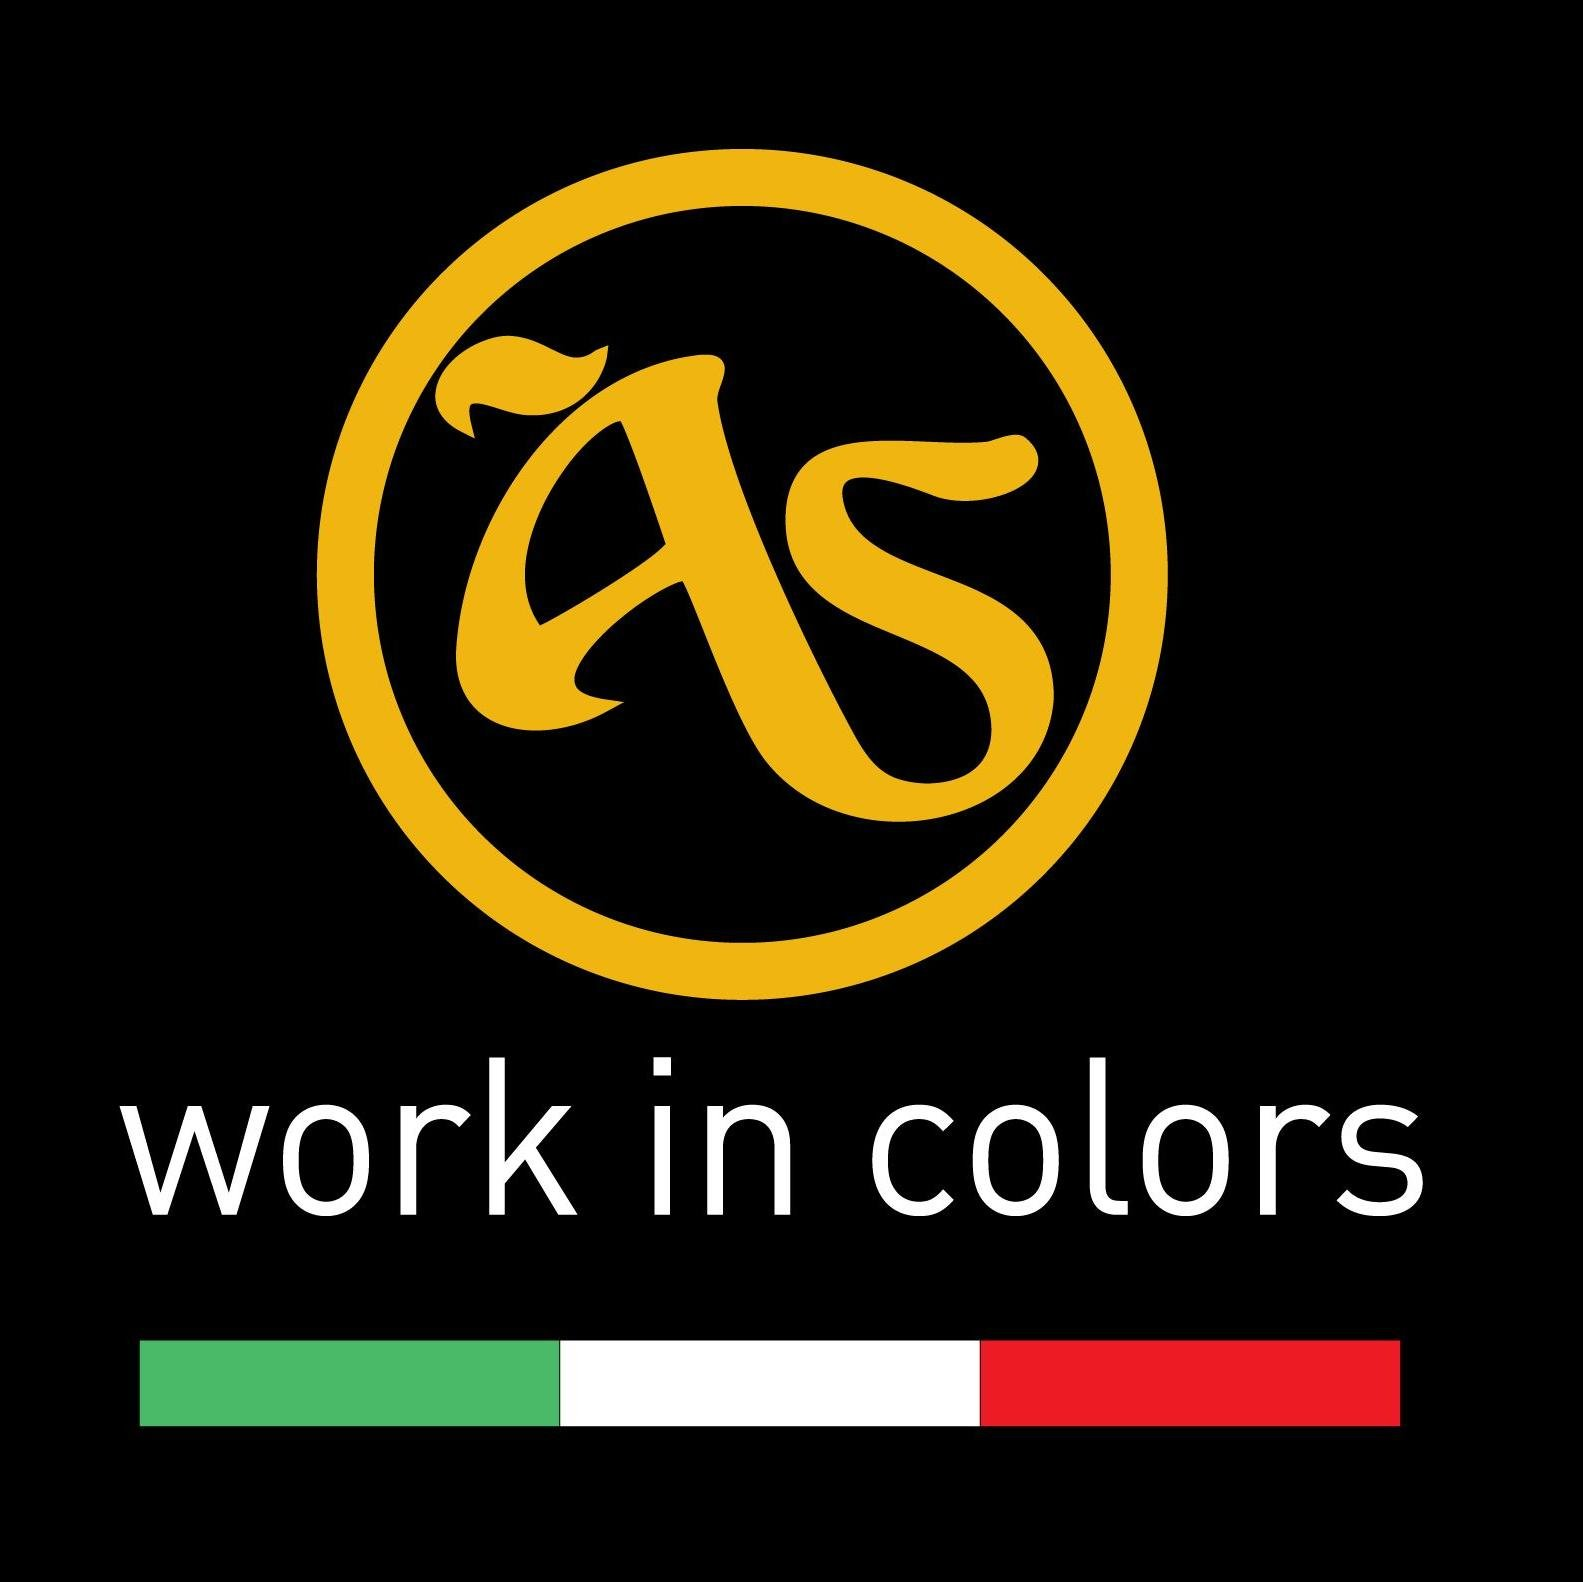 AS work in colors - Logo